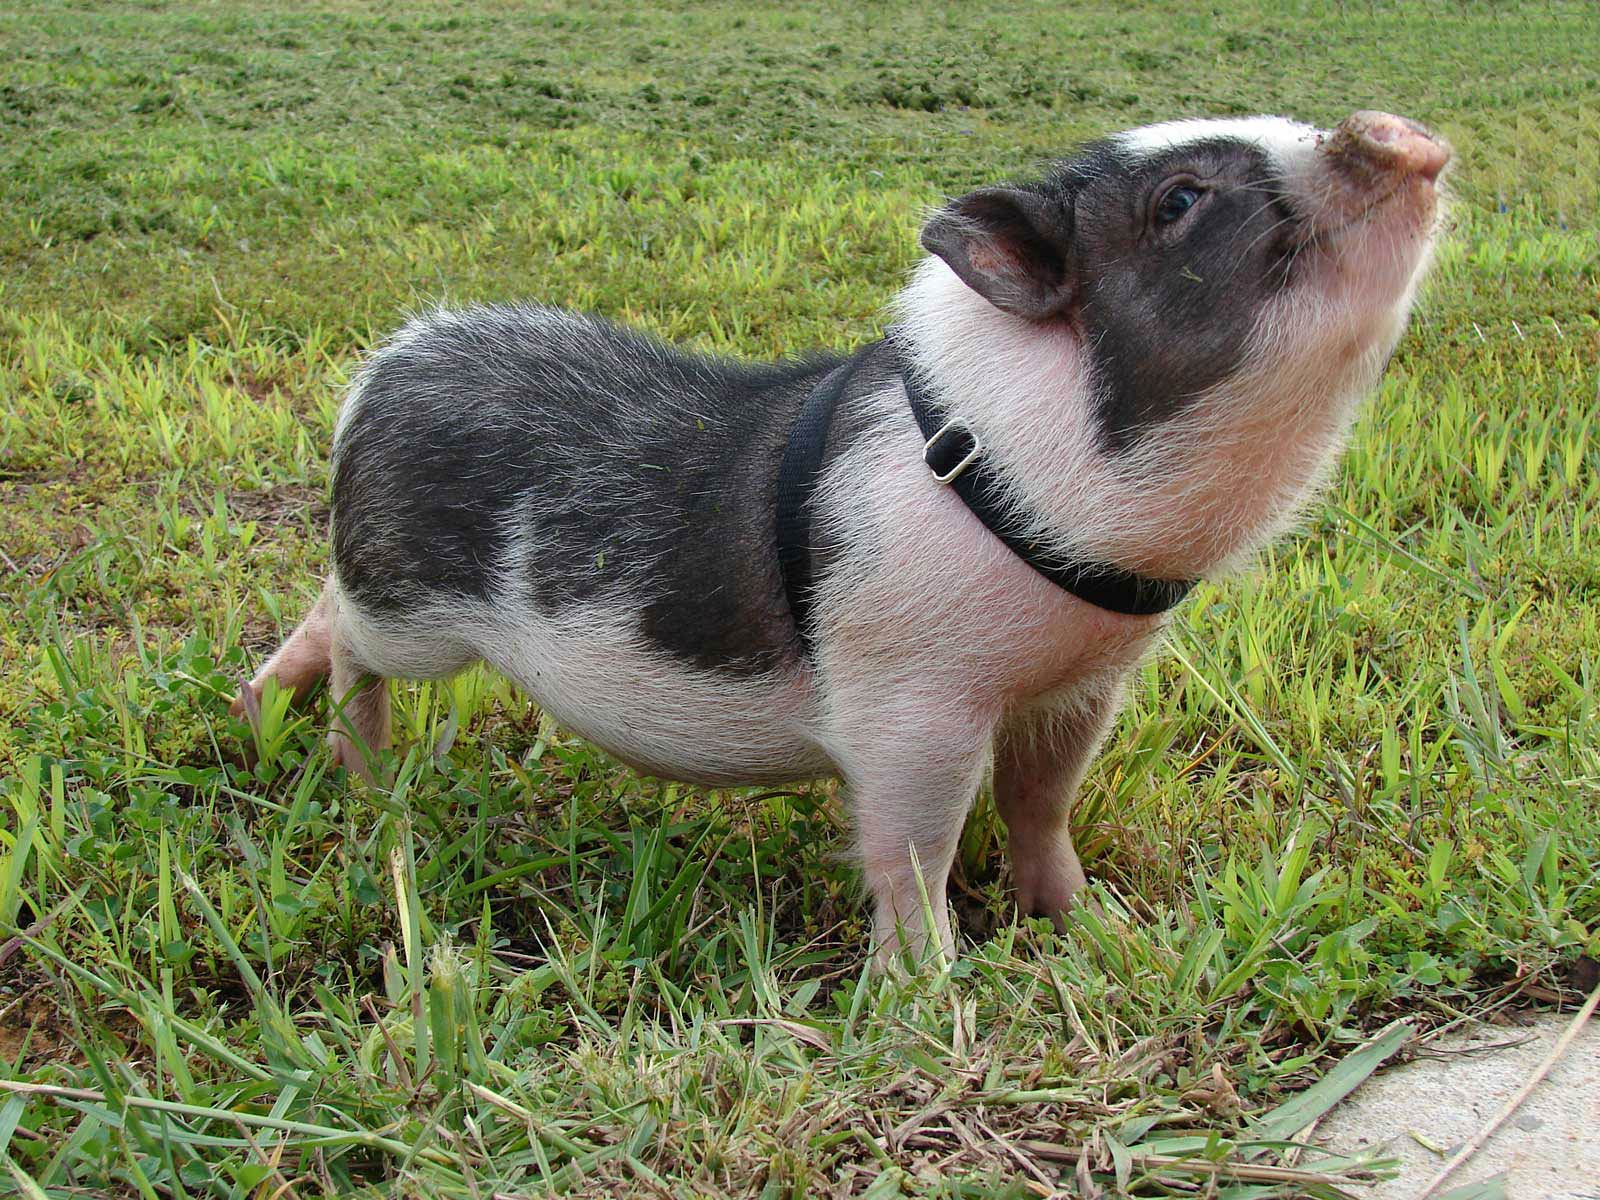 free Potbellied Pig wallpaper wallpapers download 1600x1200